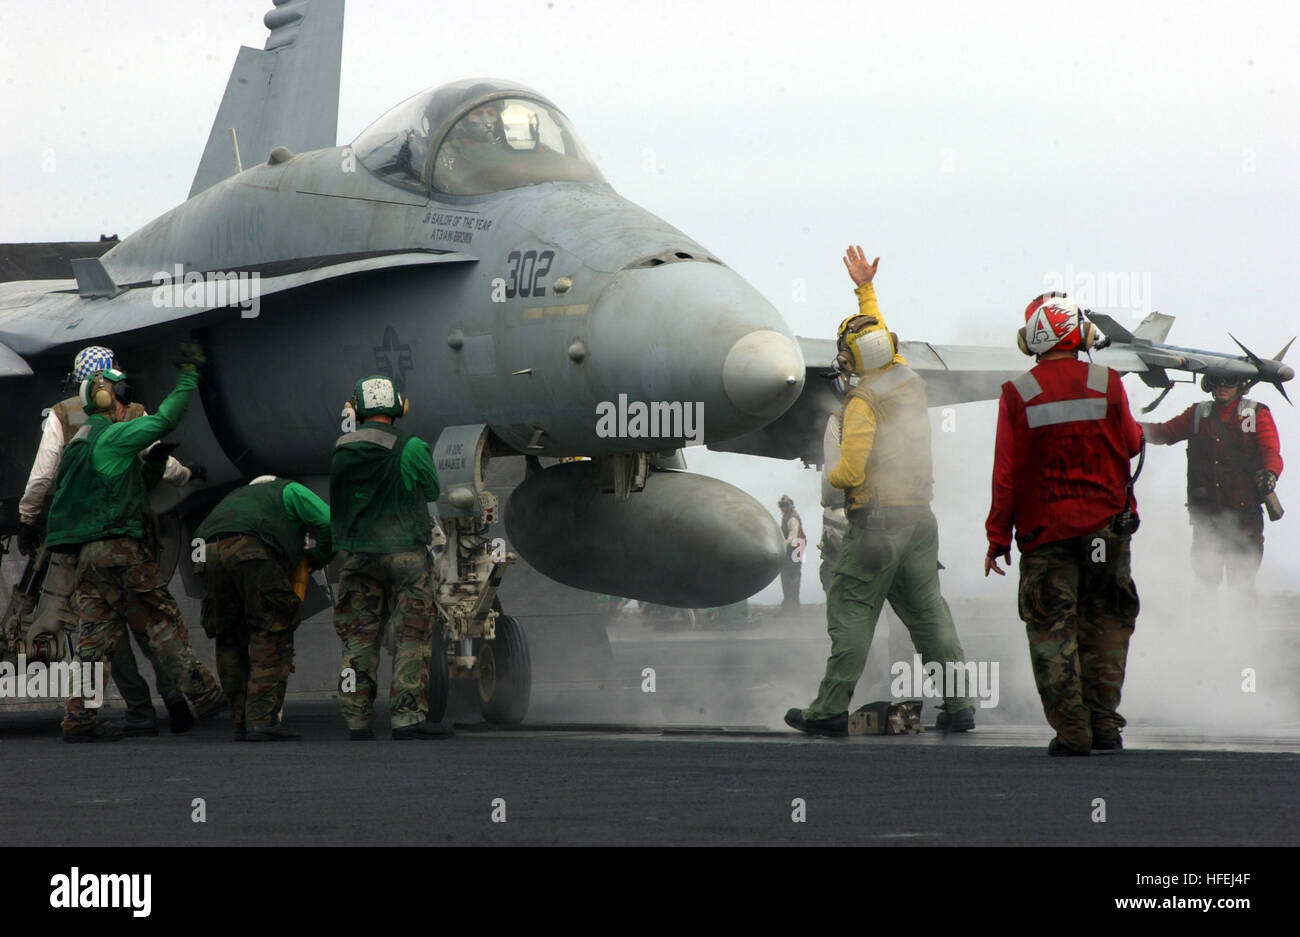 030403-N-0905V-040 Pacific Ocean (Apr. 3, 2003) -- An aircraft director signals the pilot of an F/A-18C Hornet assigned - Stock Image